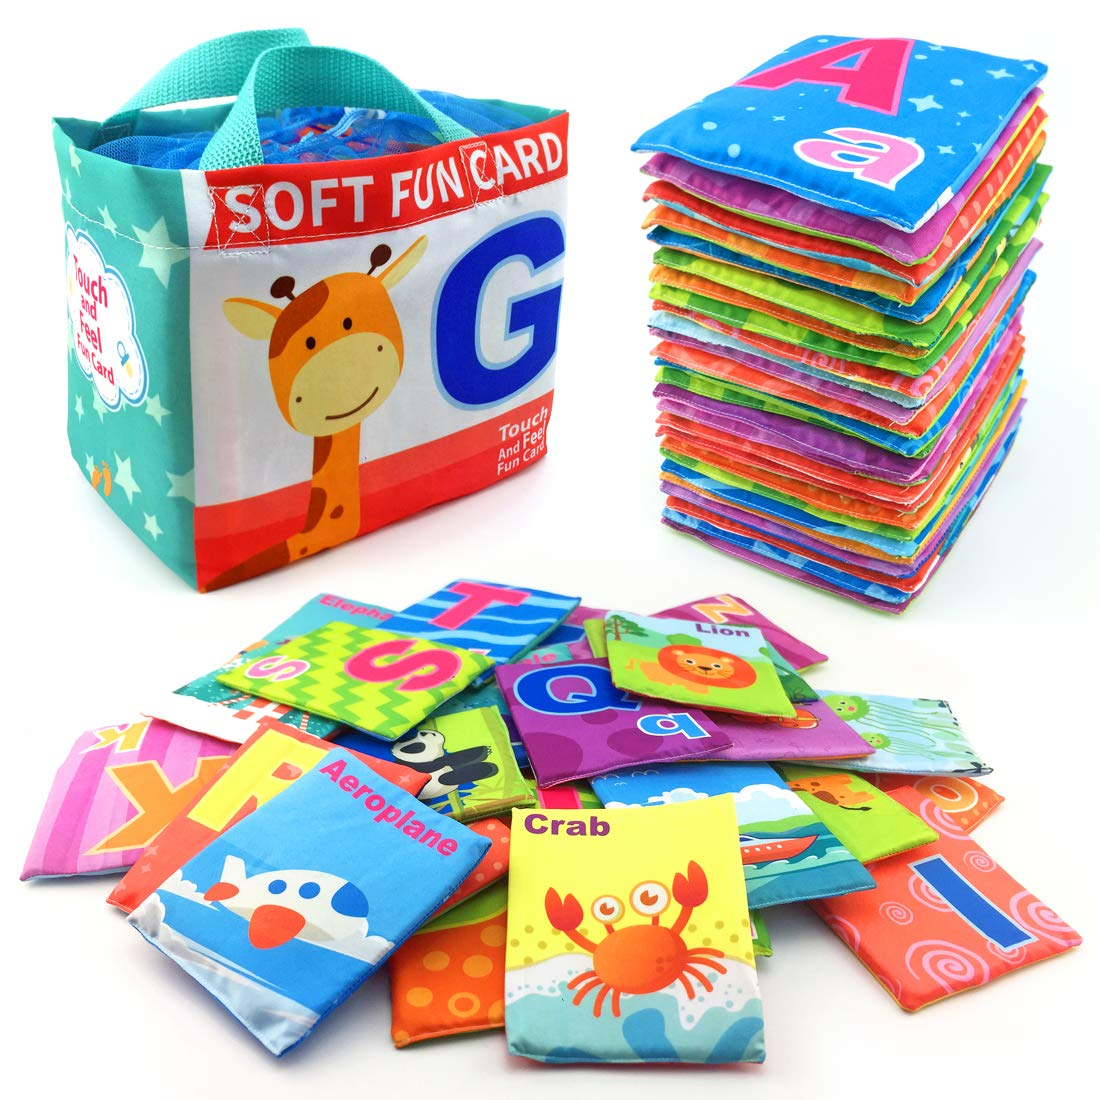 26 Pieces Soft Alphabet Cards with Cloth Storage Bag for Infants, Toddlers and Kids ABCs Learning, Best Educational Toy for Toddlers, Early Learning and Preschool Boys and Girls